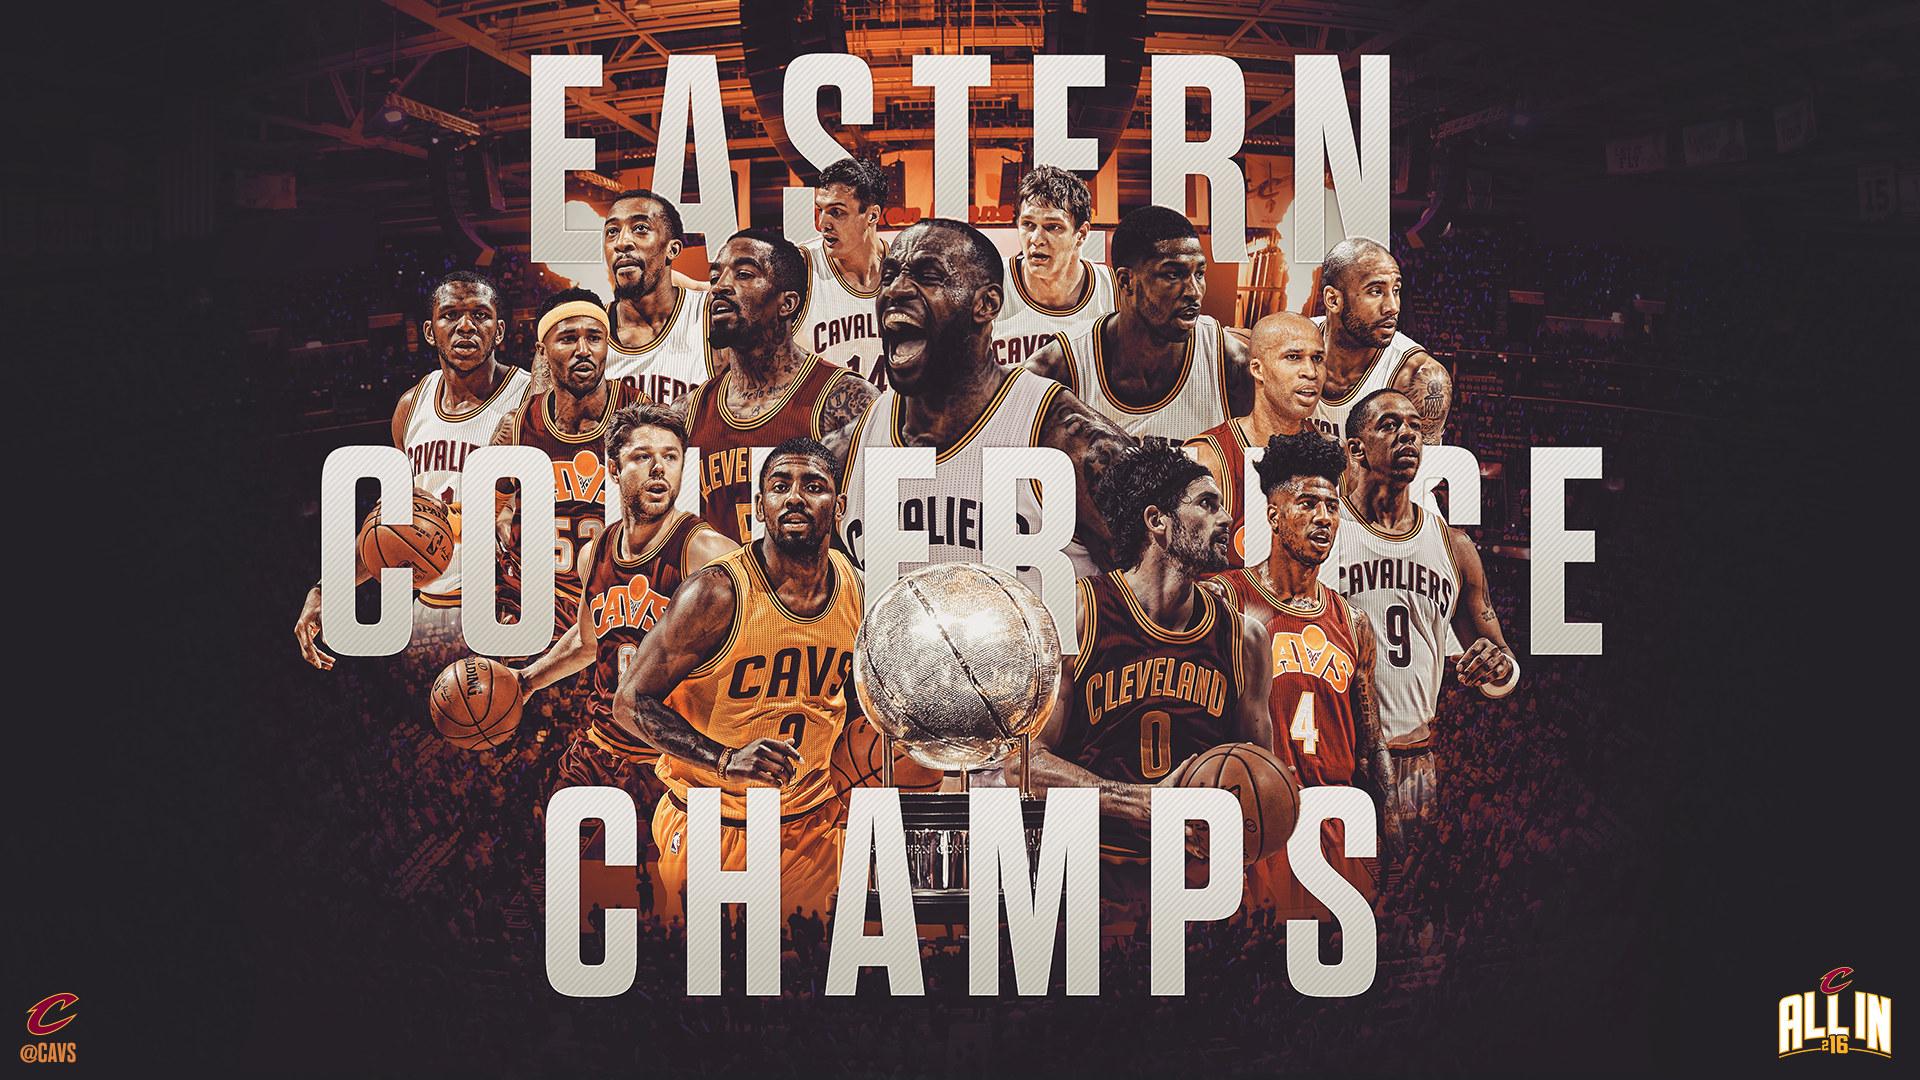 Cleveland Cavaliers HD Wallpaper | Background Image | 1920x1080 | ID:770793 - Wallpaper Abyss